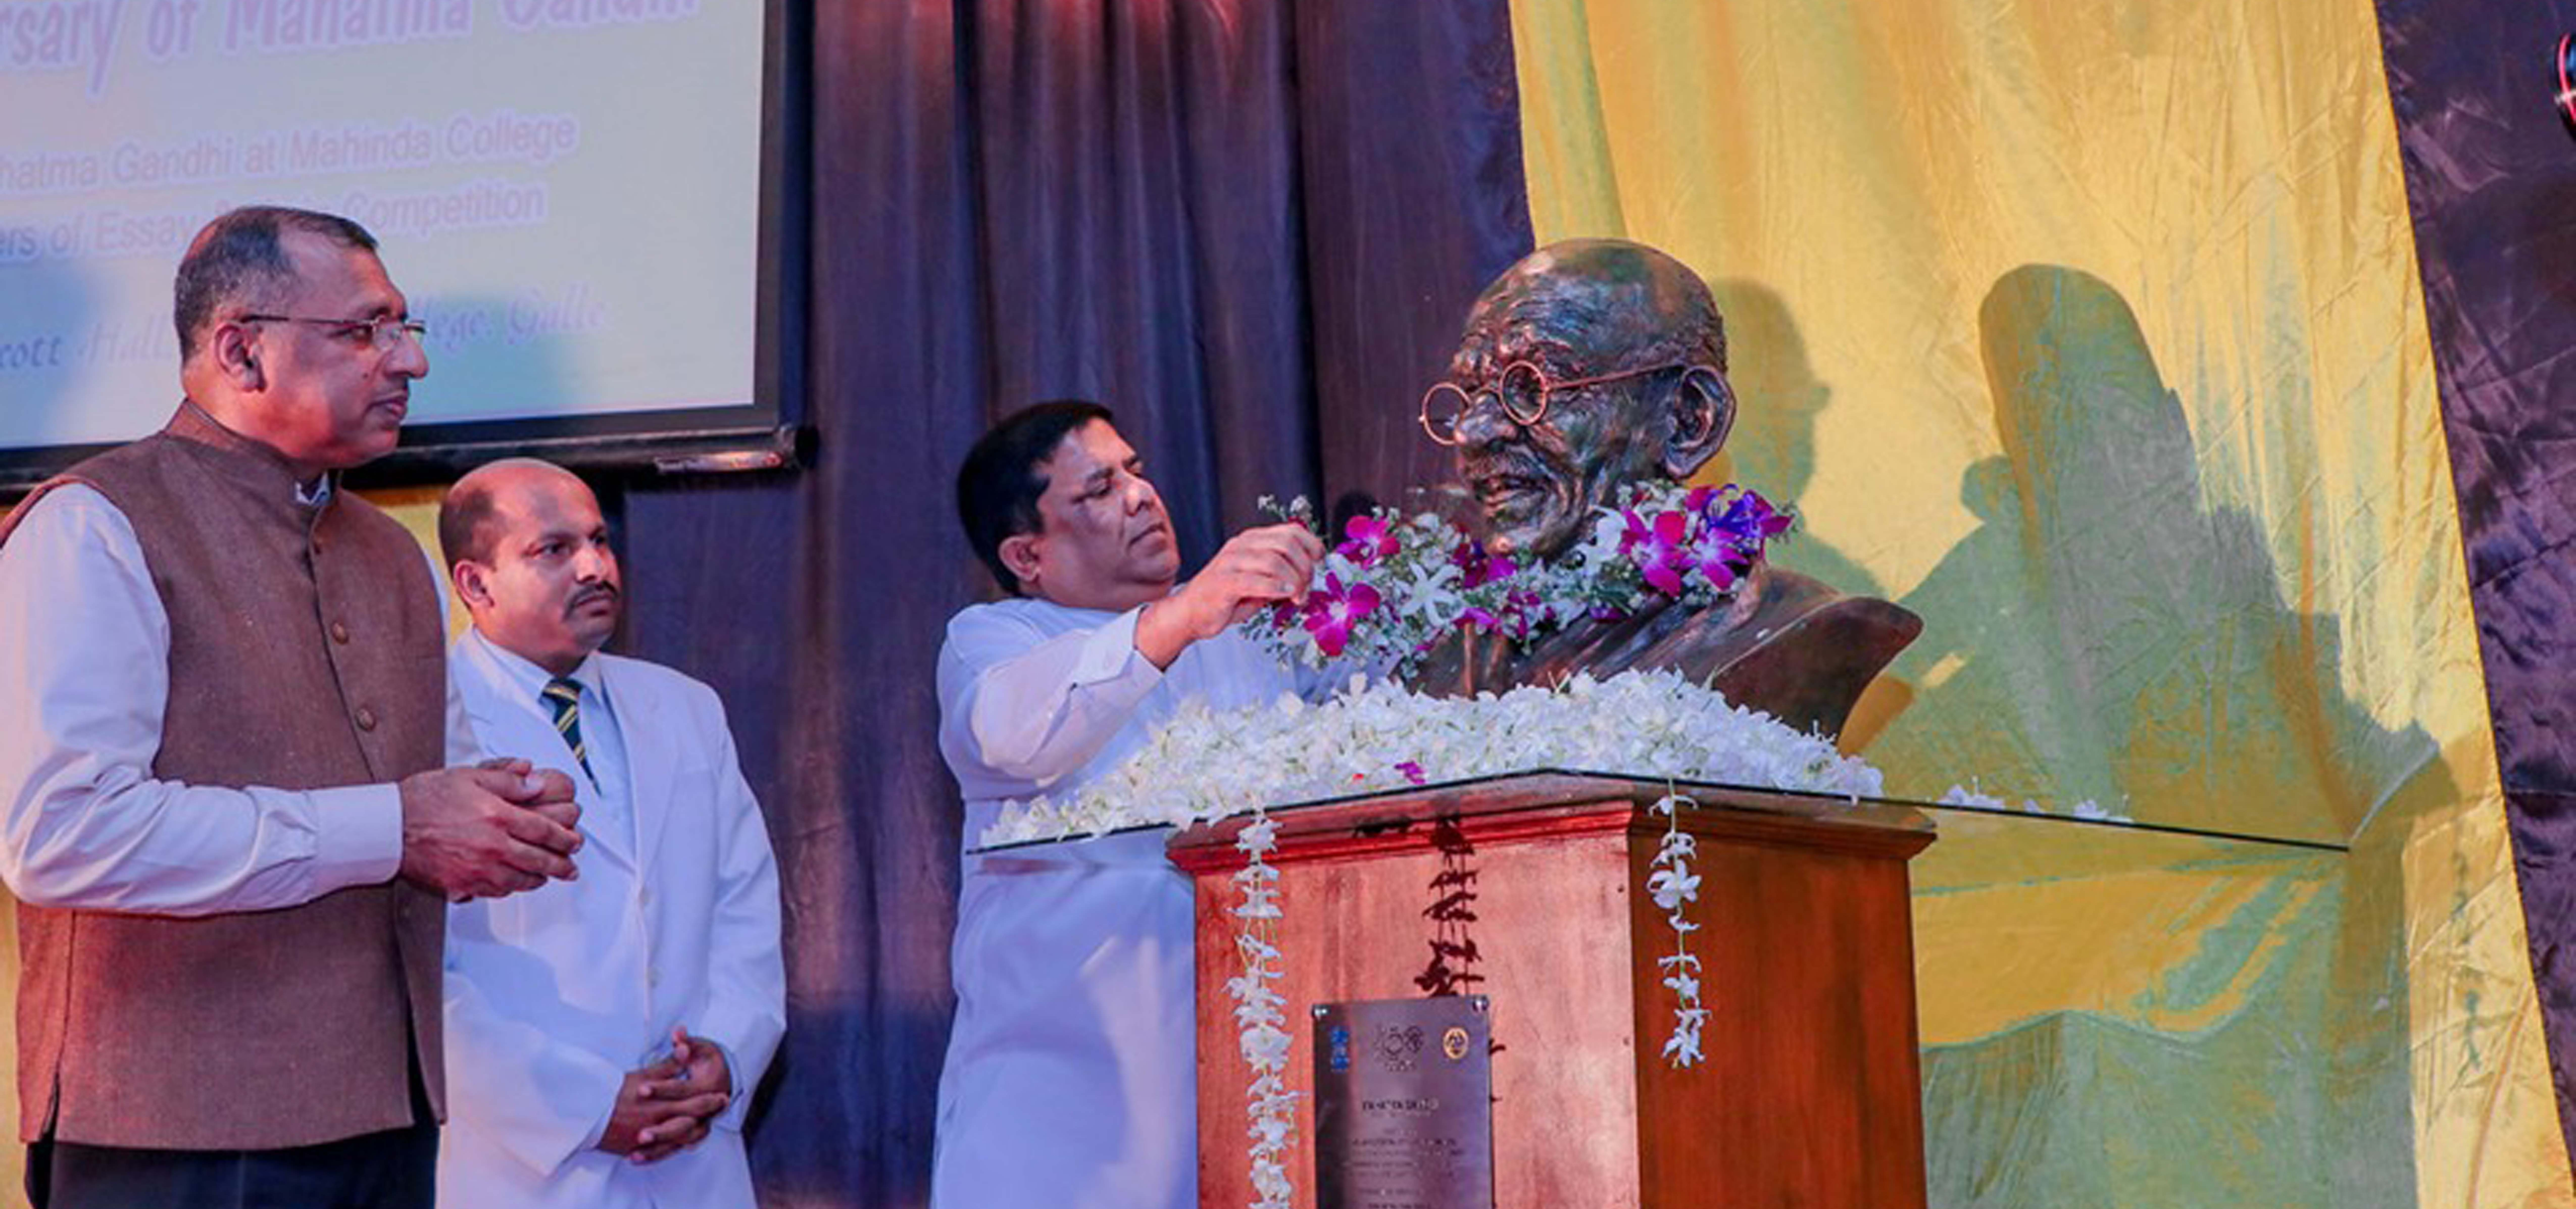 Gandhi @ 150 celebration  -  Mr. Vajira Abaywardena, Hon'ble Minister of Internal & Home Affairs garlanding the Mahatma Gandhi's bust presented by the Consulate to Mahinda College, Galle to commemorate Mahatma Gandhi's visit to Mahinda College in November 1927